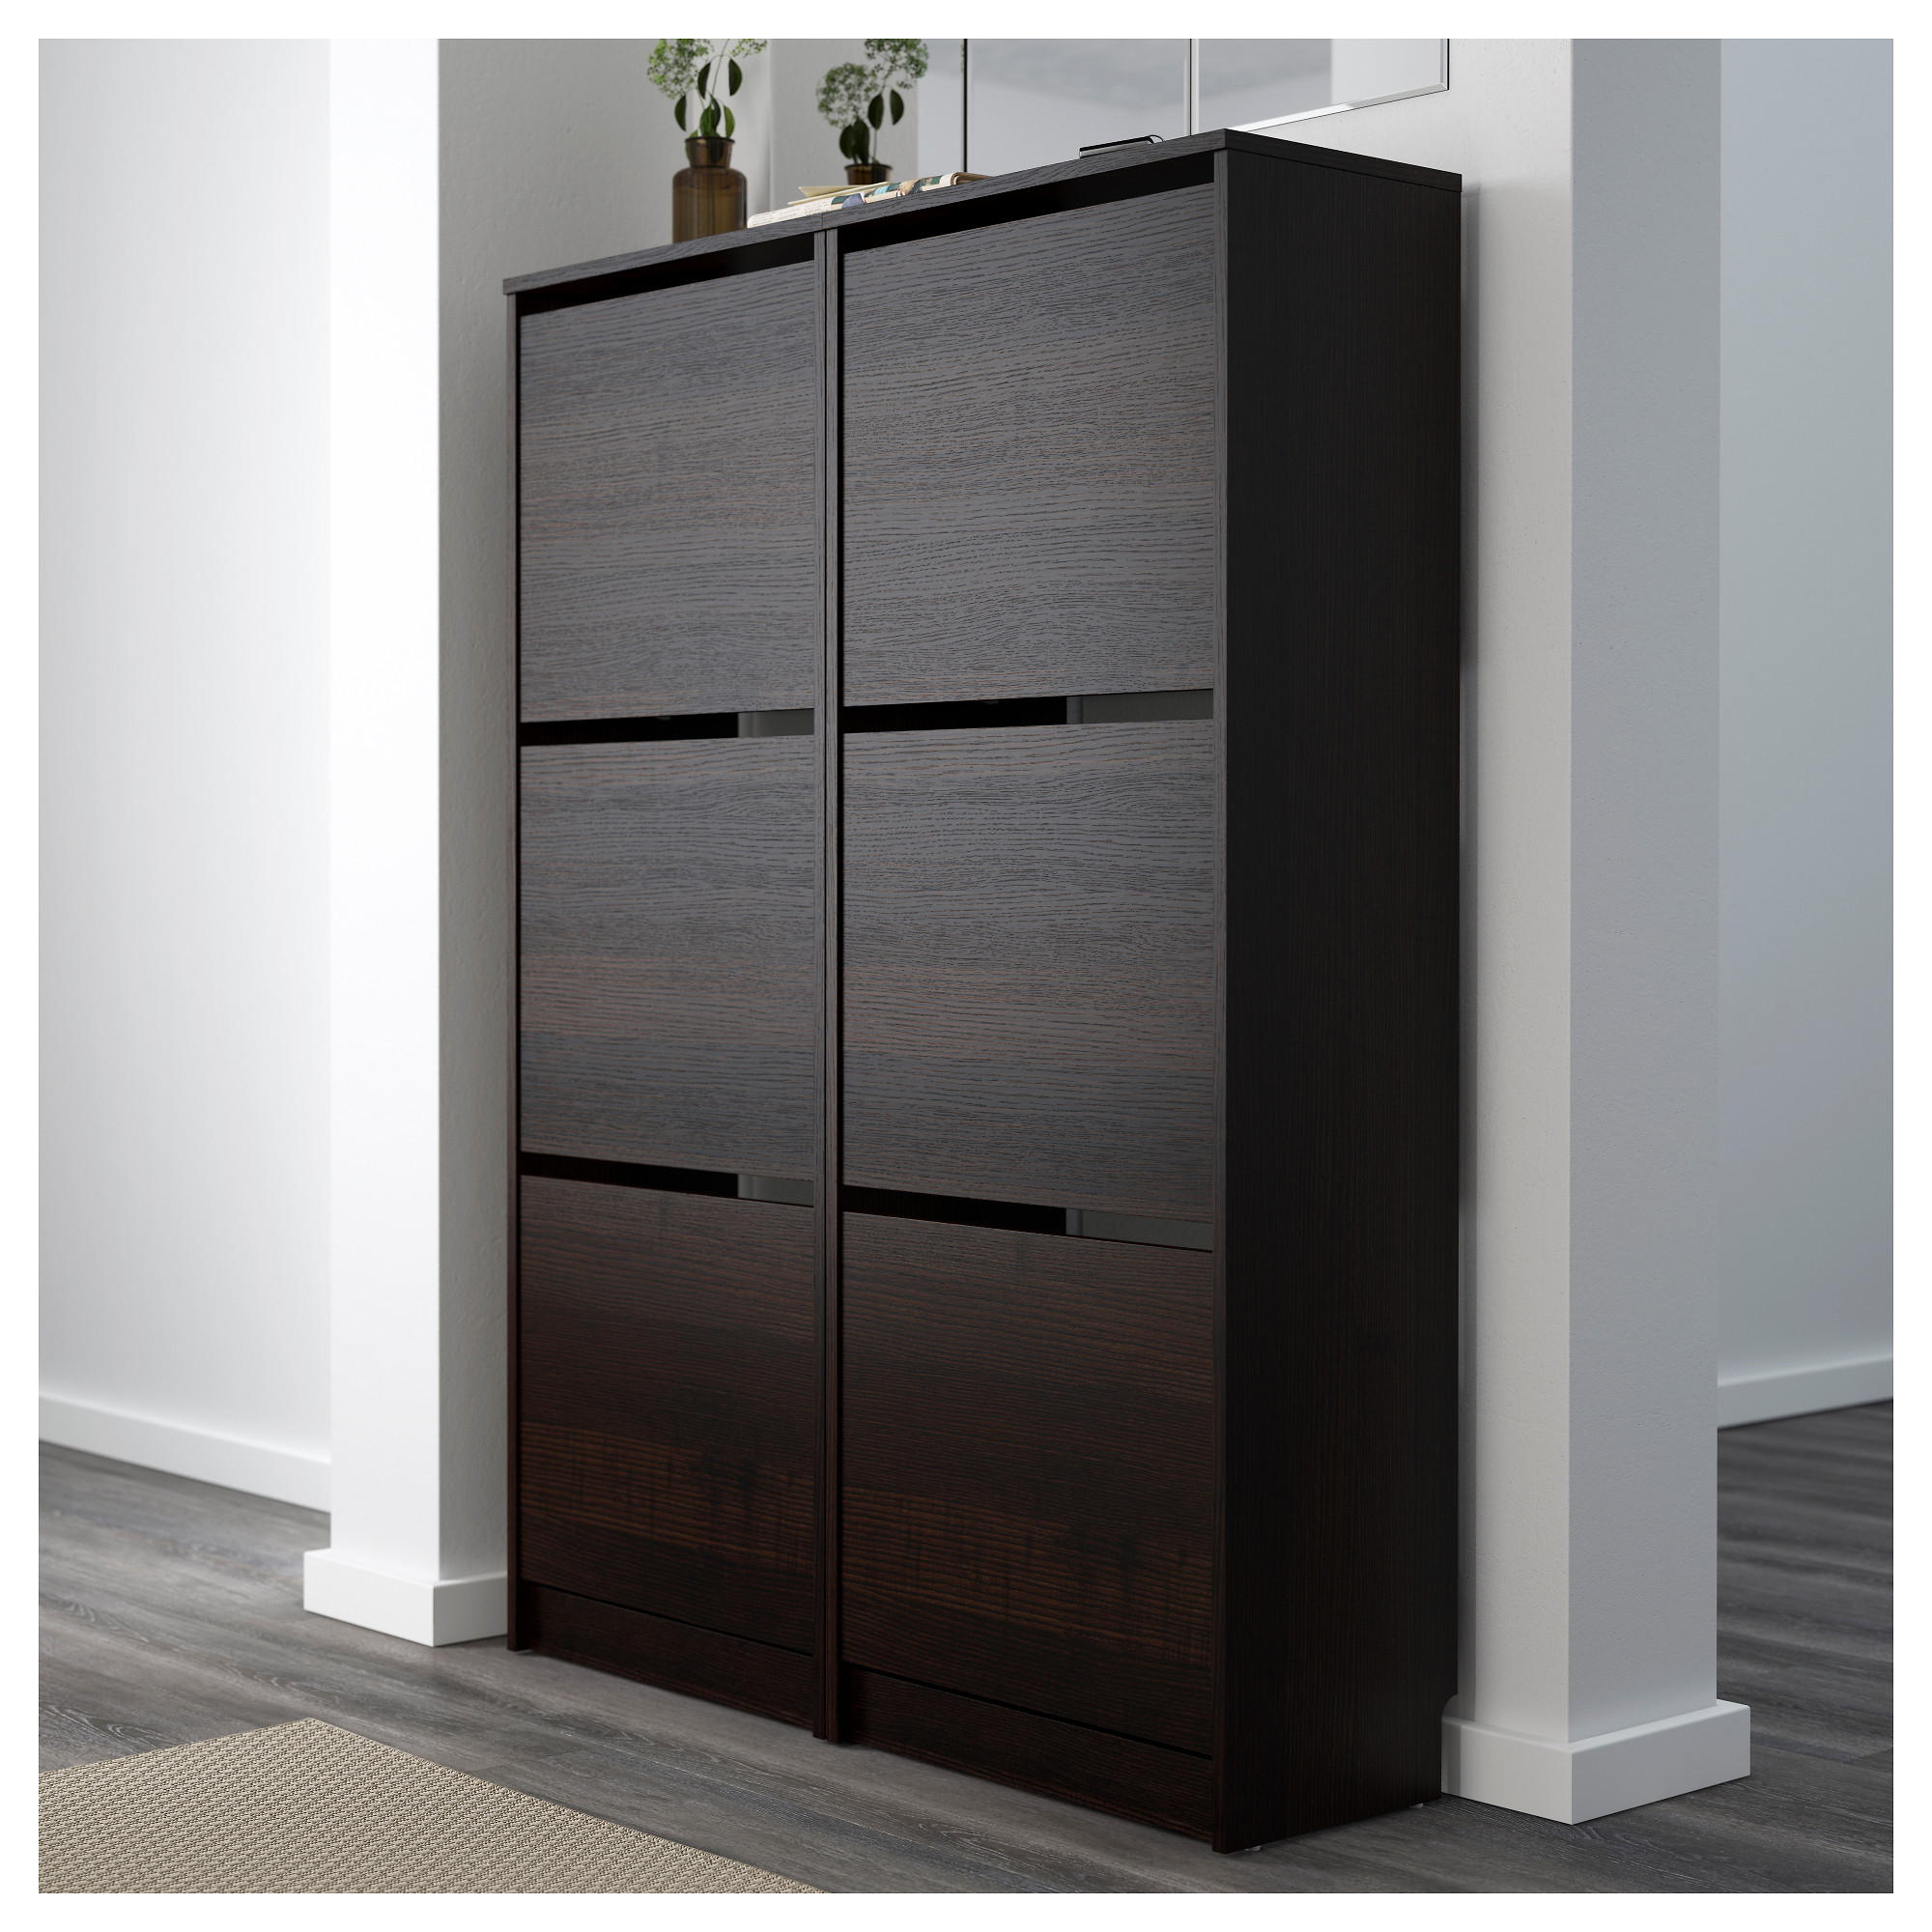 Best Ikea Bissa Shoe Cabinet With 3 Compartment Black Brown 400 x 300